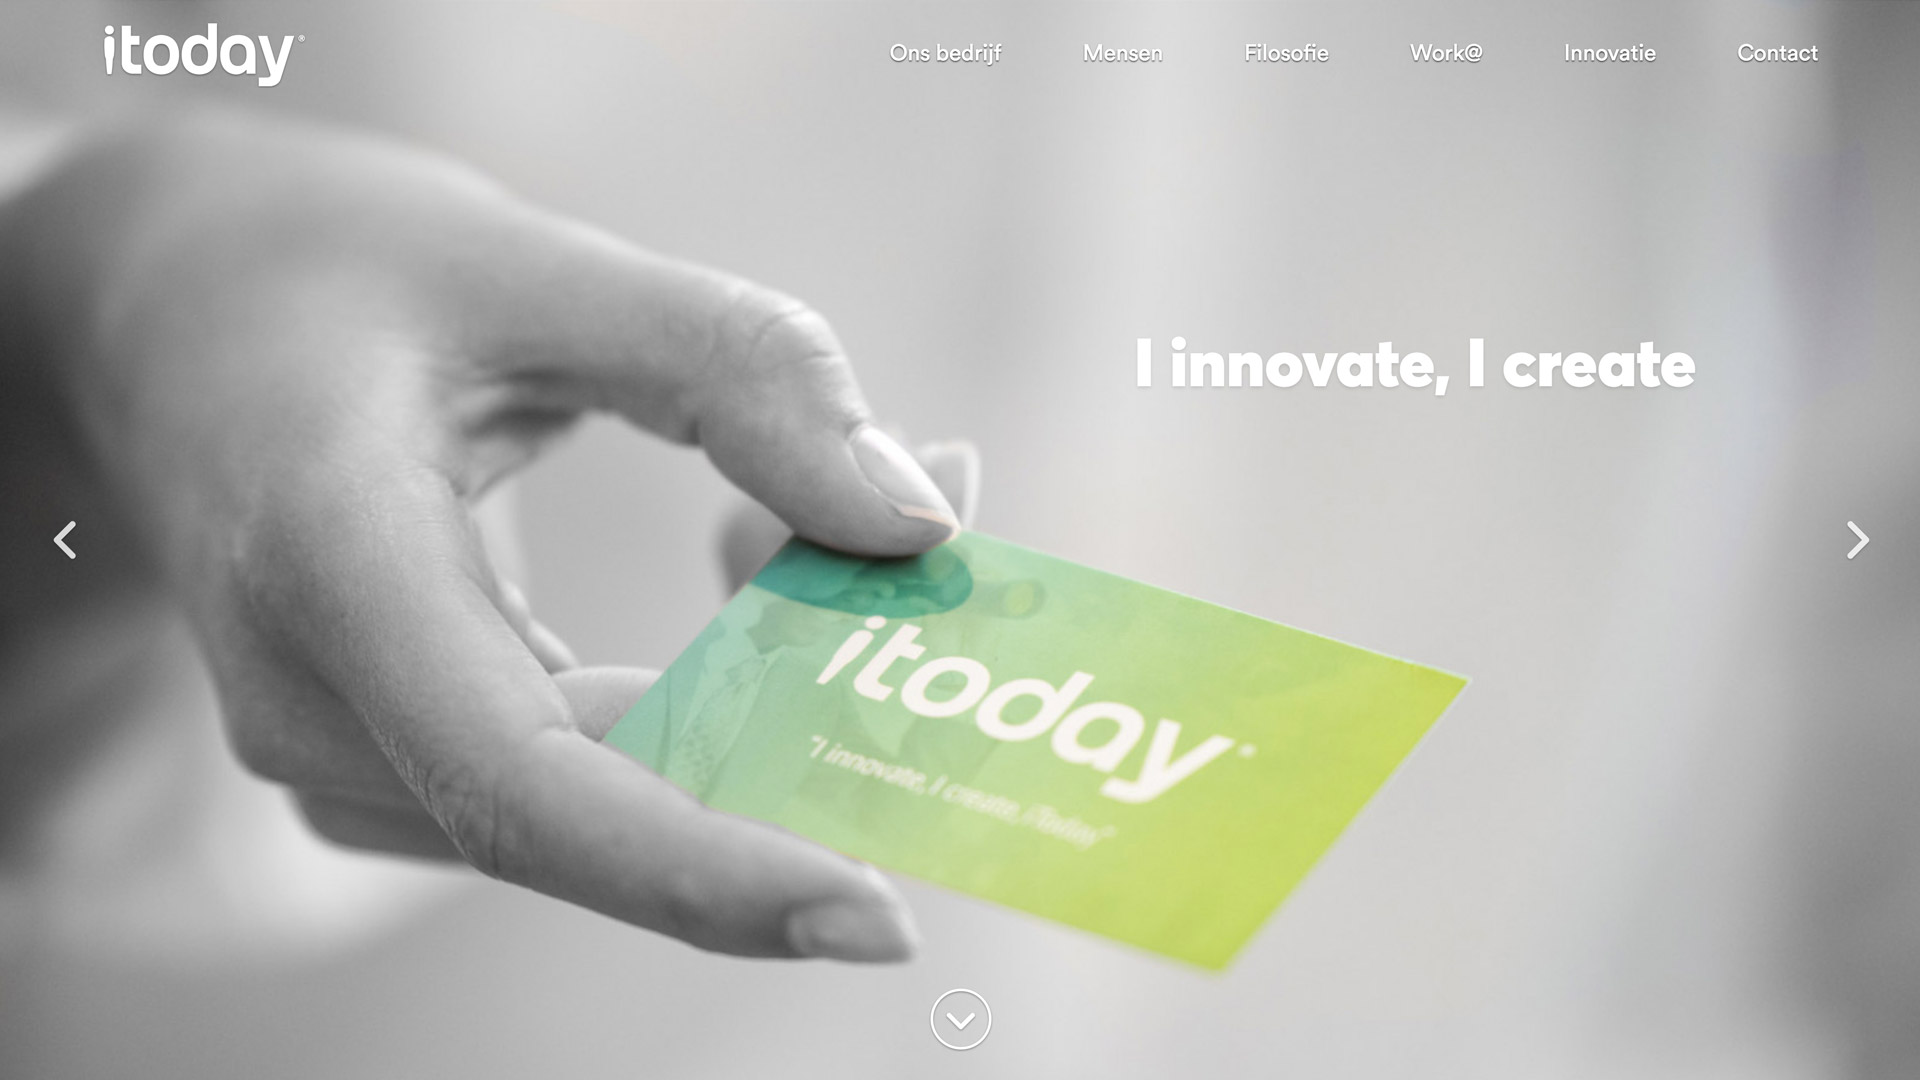 Website development for iToday / 1